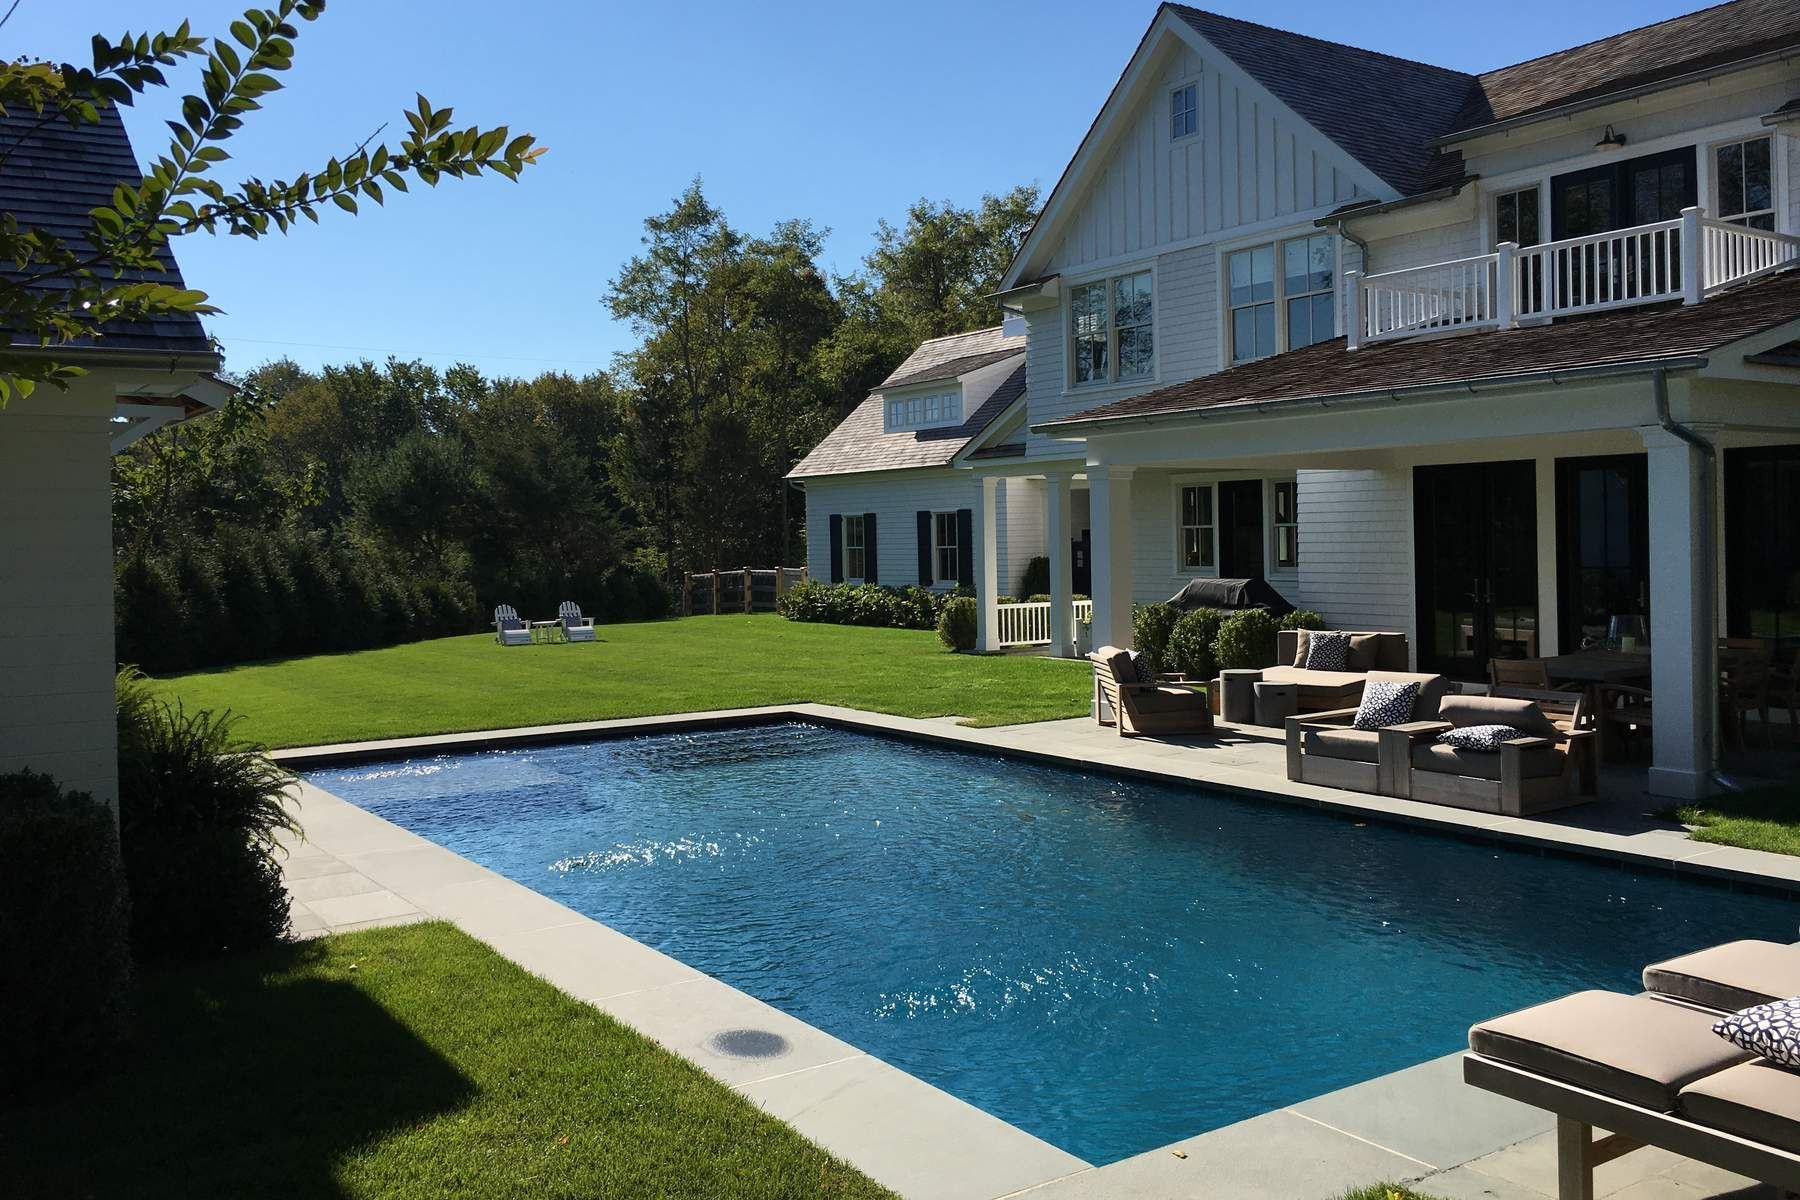 Single Family Home for Rent at NEW CONSTRUCTION IN EAST HAMPTON VILLAGE East Hampton, New York 11937 United States